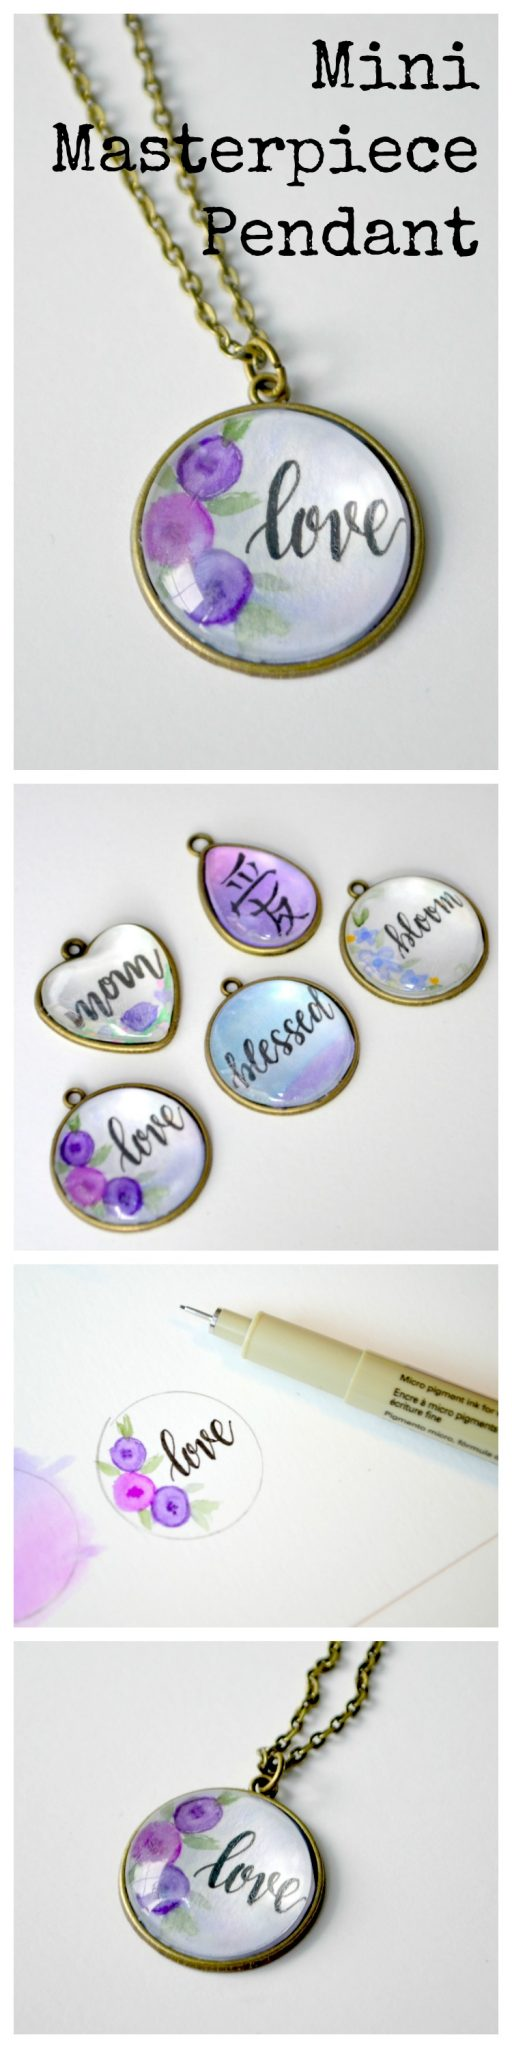 Hand Lettered Pendant Necklace